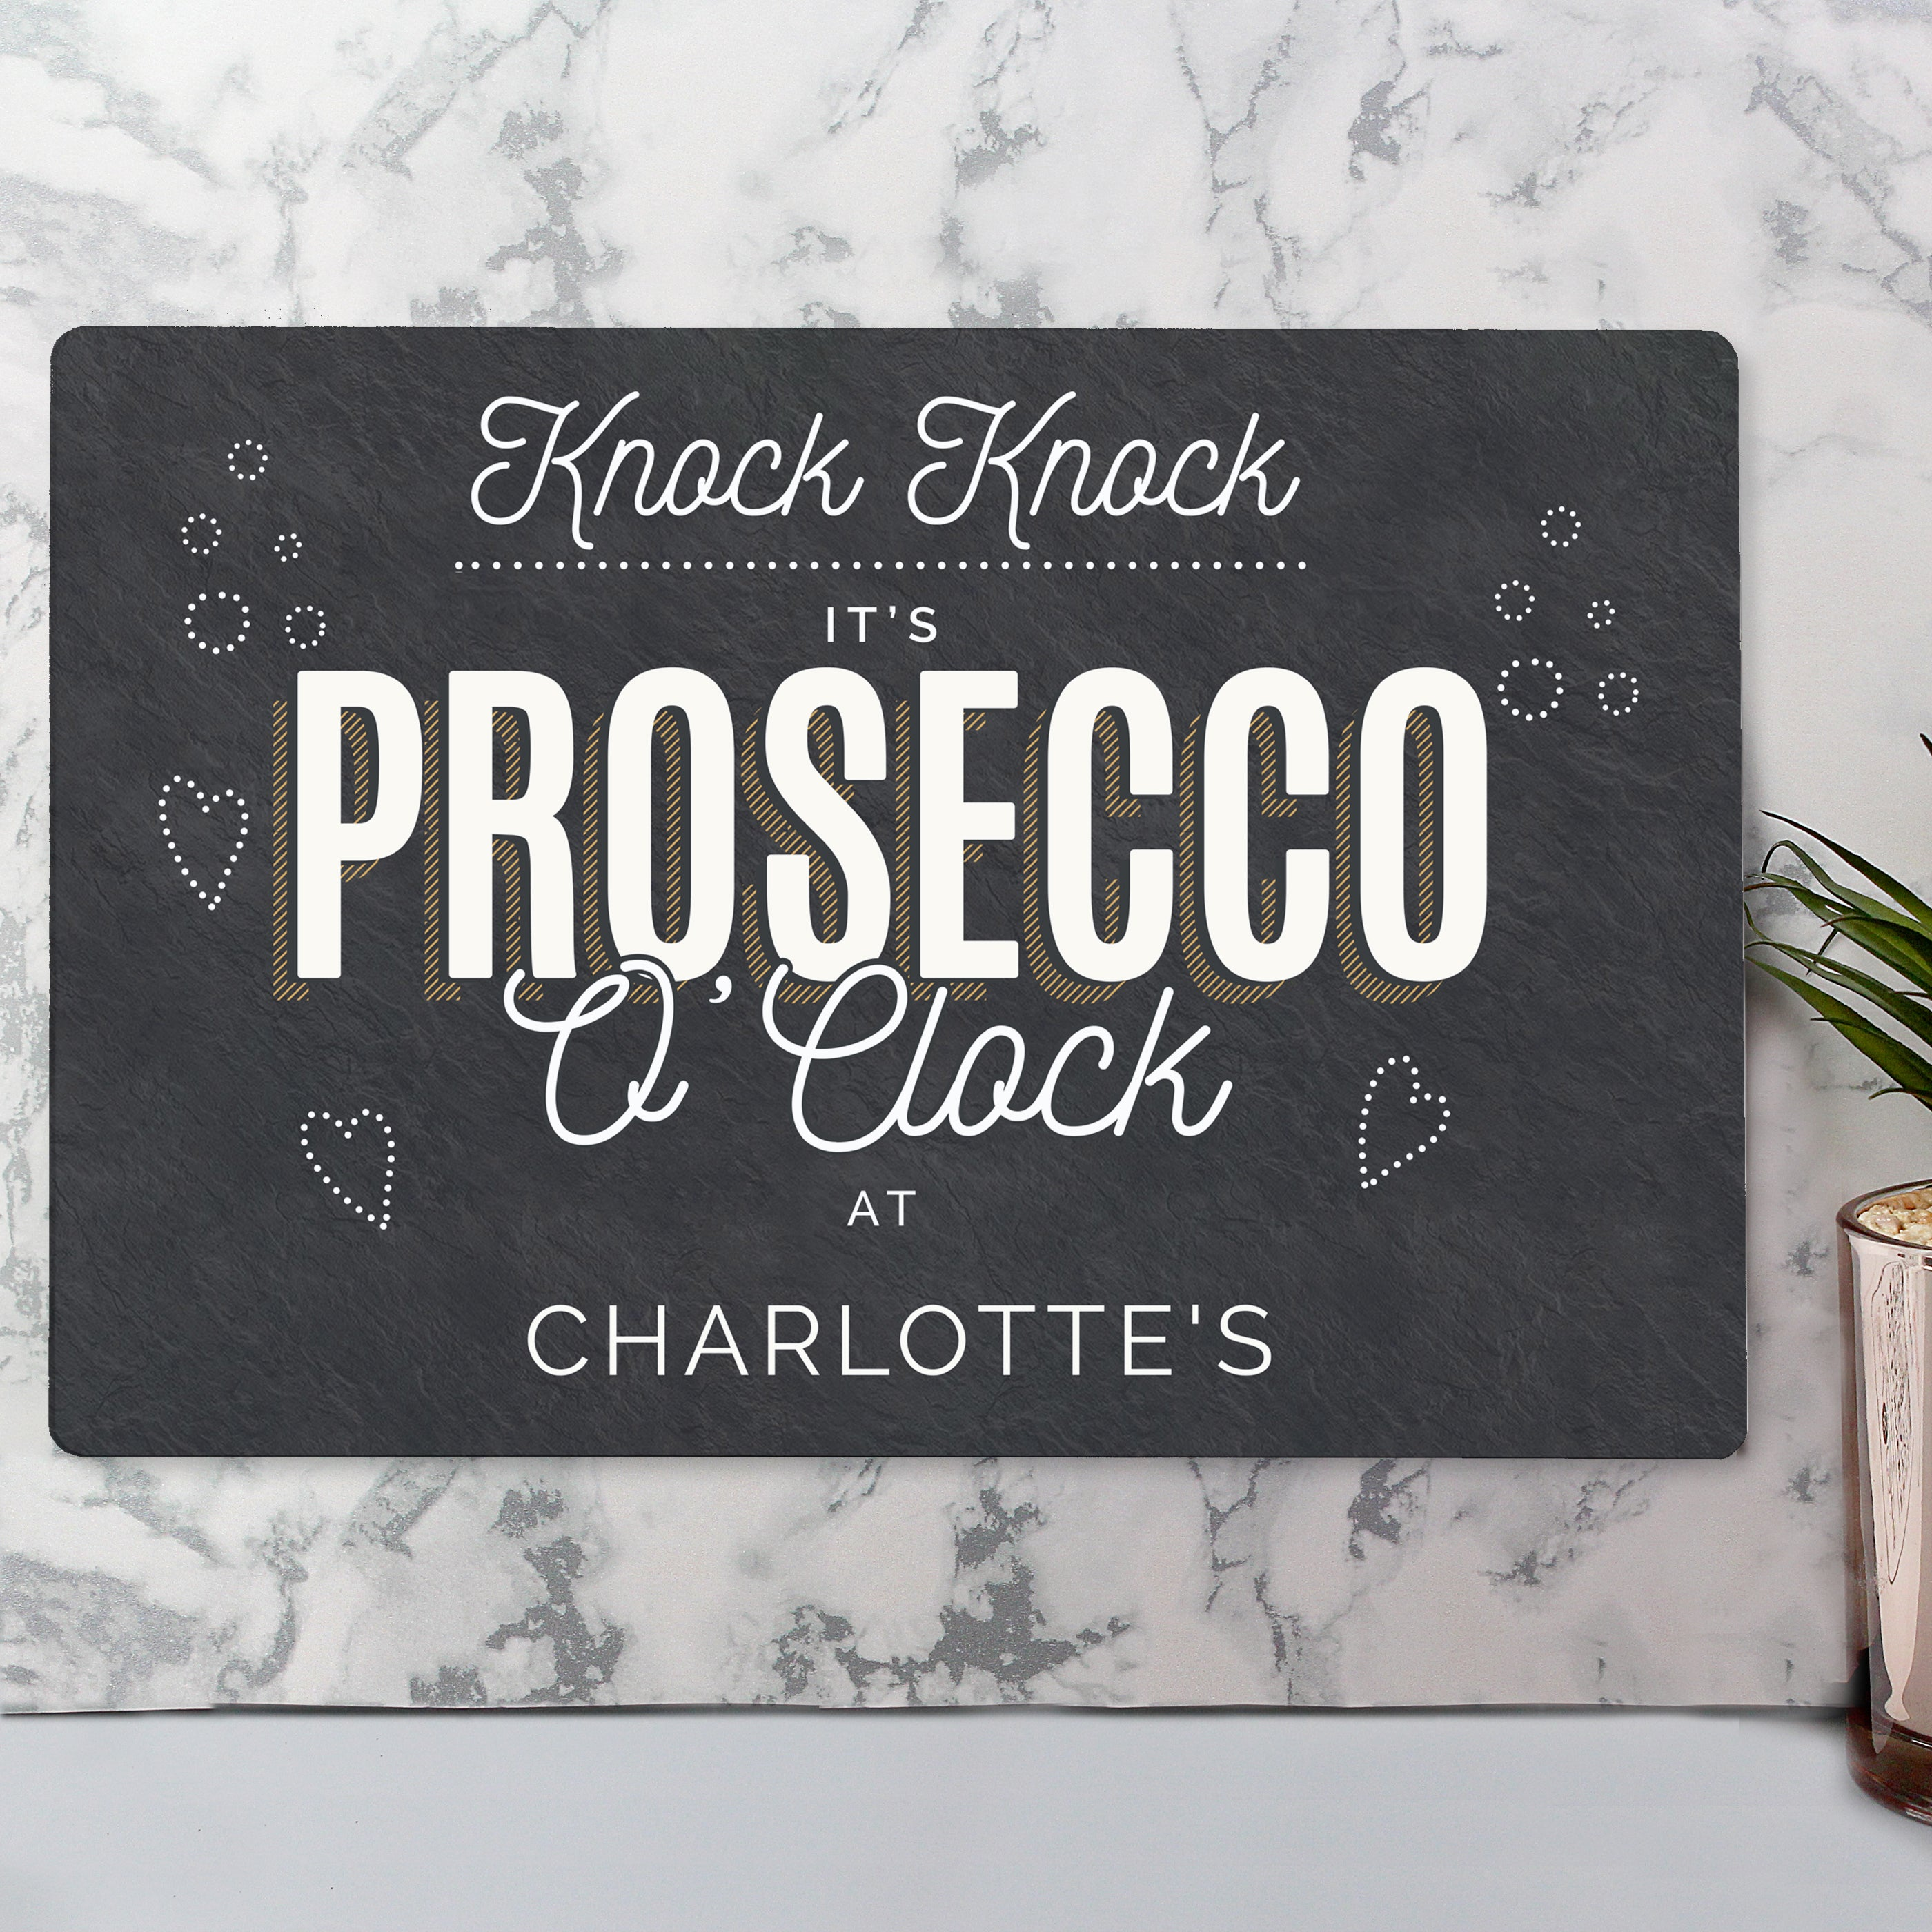 Personalised Prosecco Metal Sign, Business & Industrial by Low Cost Gifts